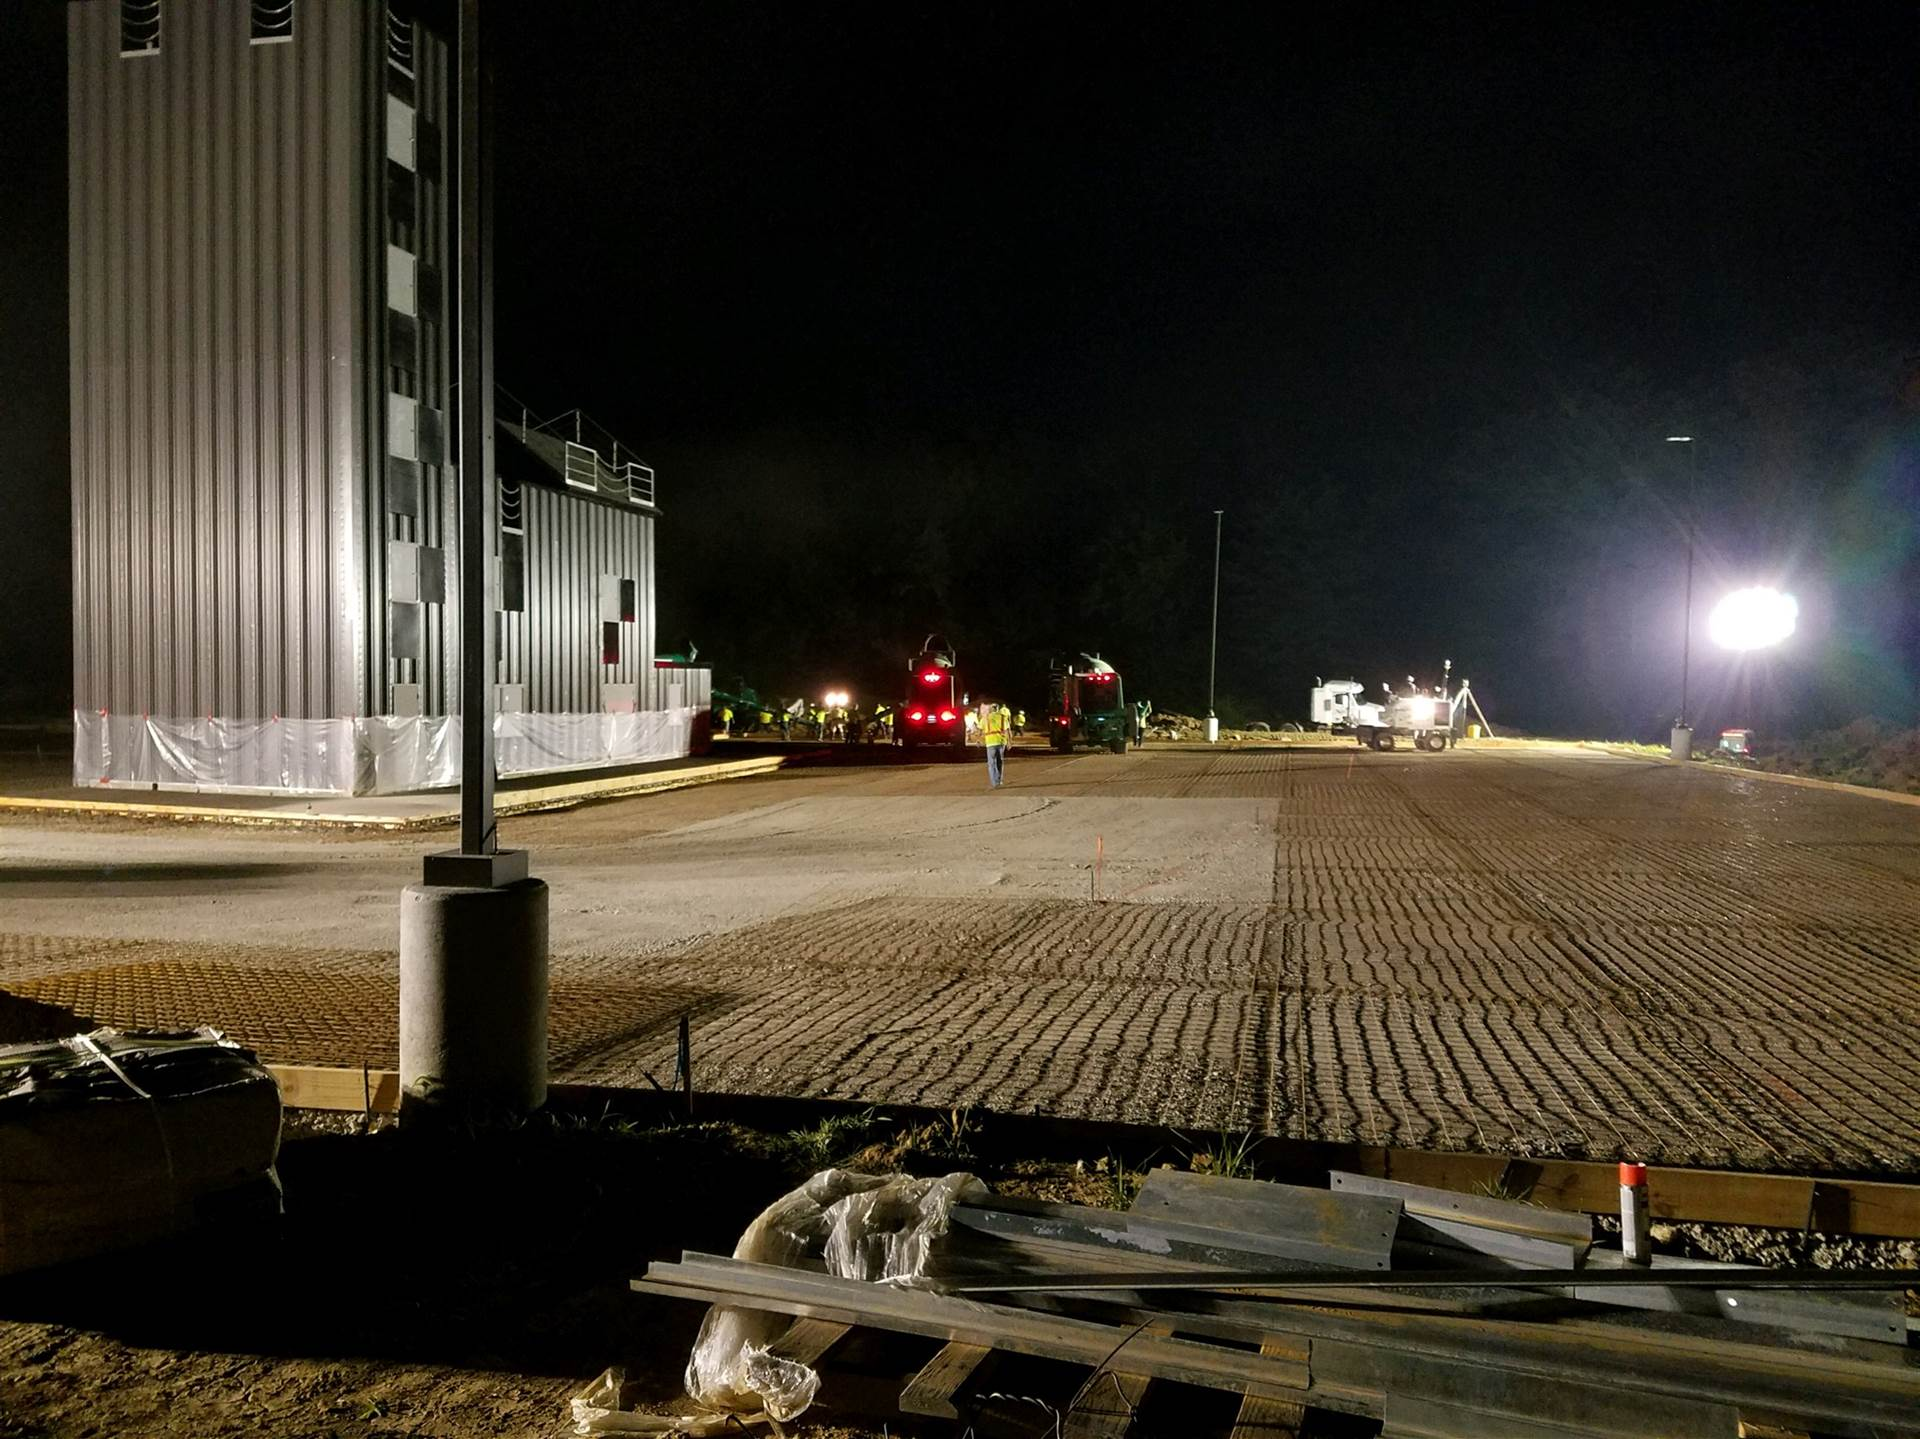 Fire training center at night